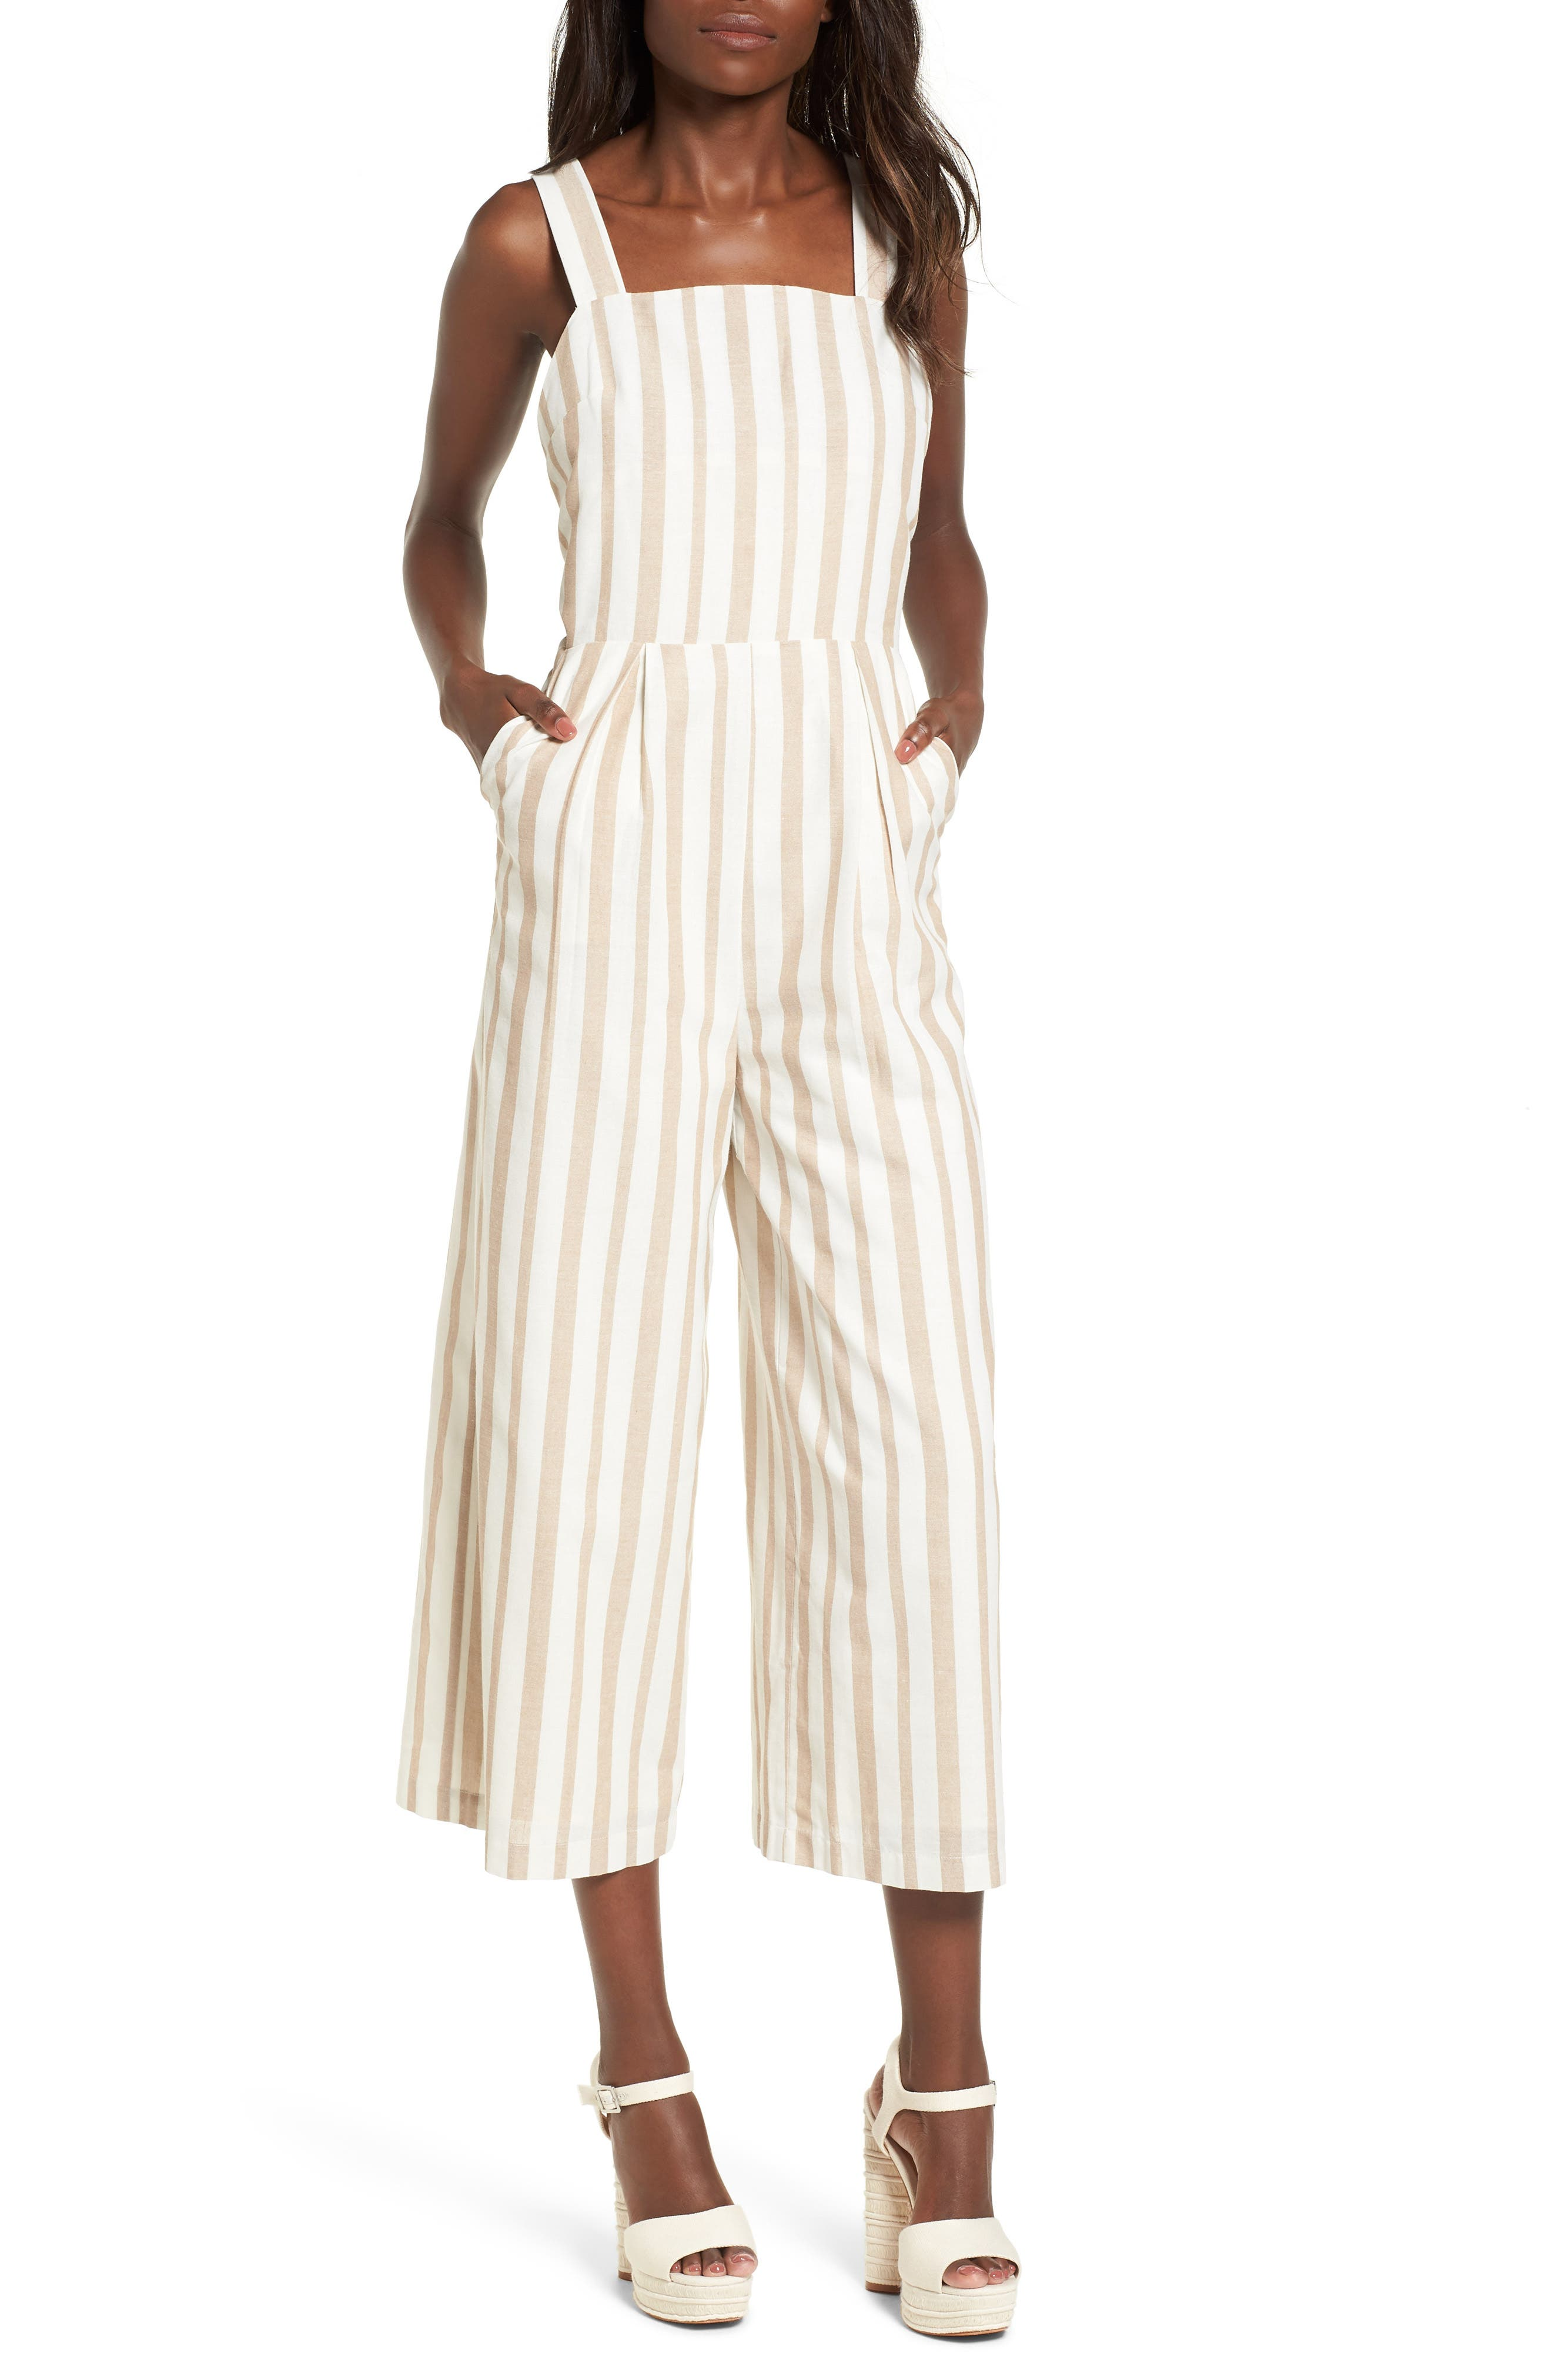 Chriselle x J.O.A. Wide Leg Jumpsuit,                             Main thumbnail 1, color,                             250